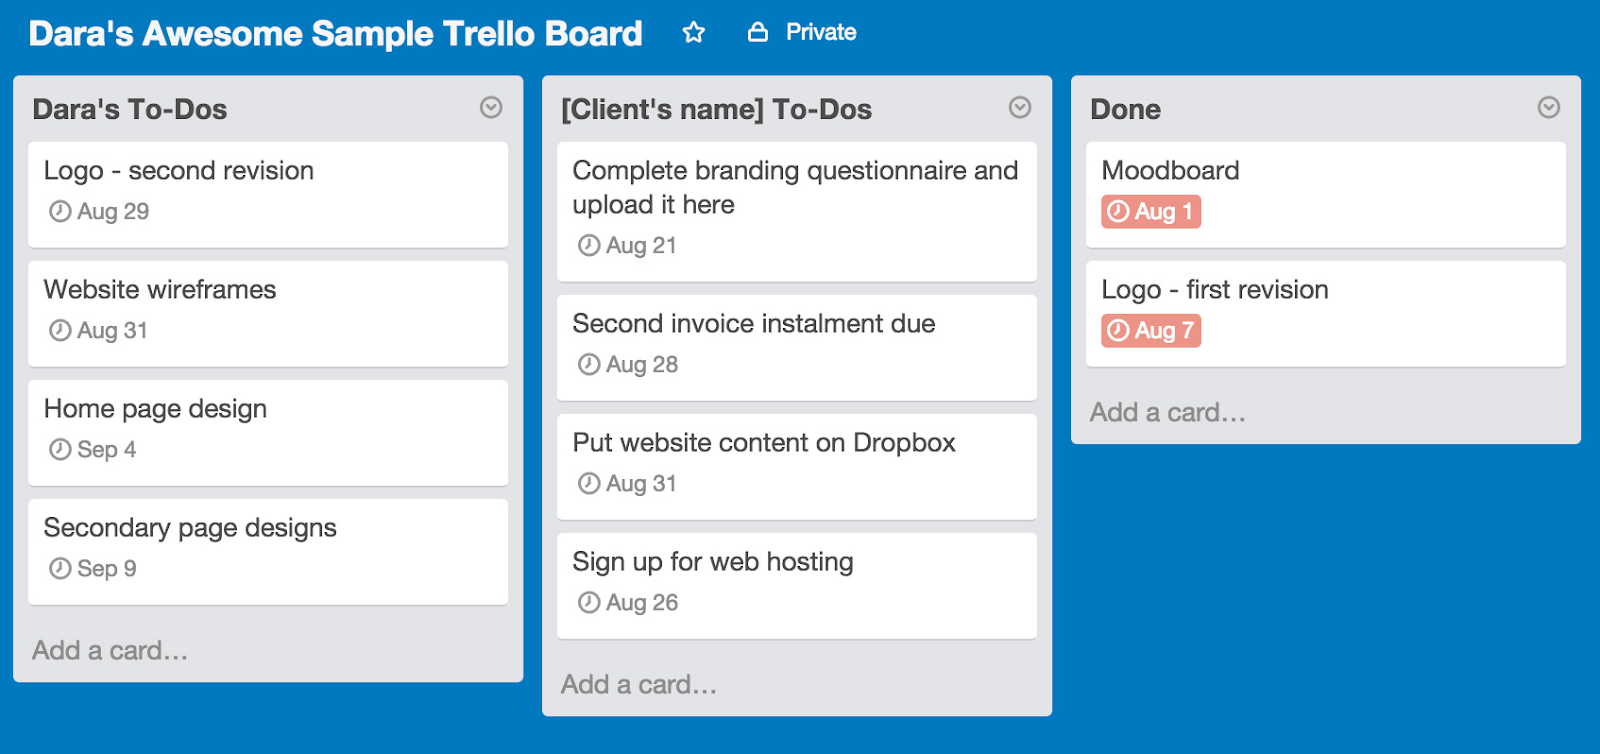 This is a sample trello board. It shows to-do lists and a list of  finished tasks. This is an example of a kanban board.